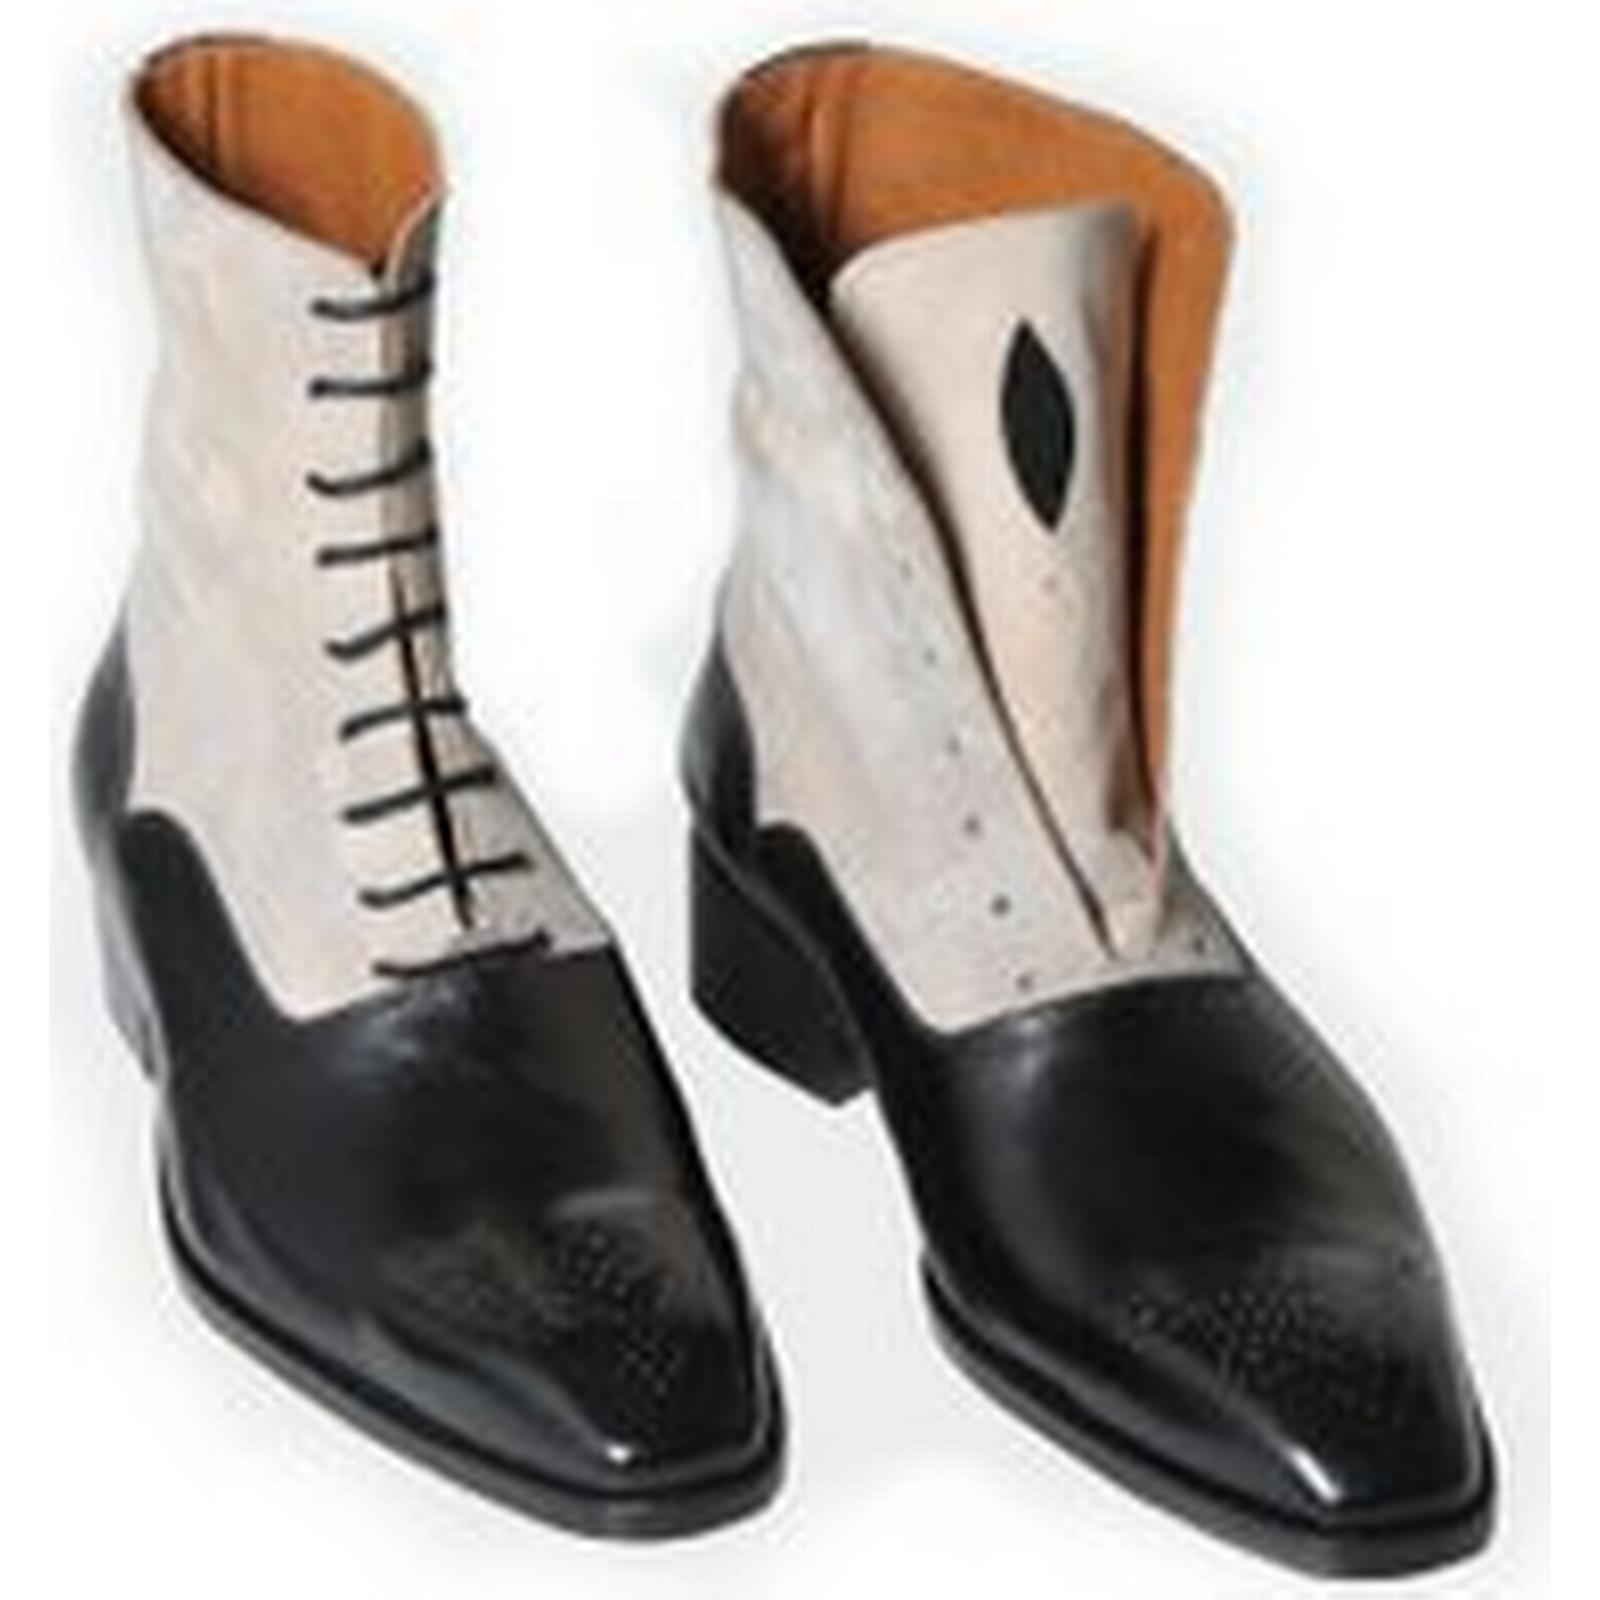 Bonanza (Global) Handmade Men Tone Two Tone Men Ankle Boots, Men Dress Boots, Leather Boot For Men 1cf475